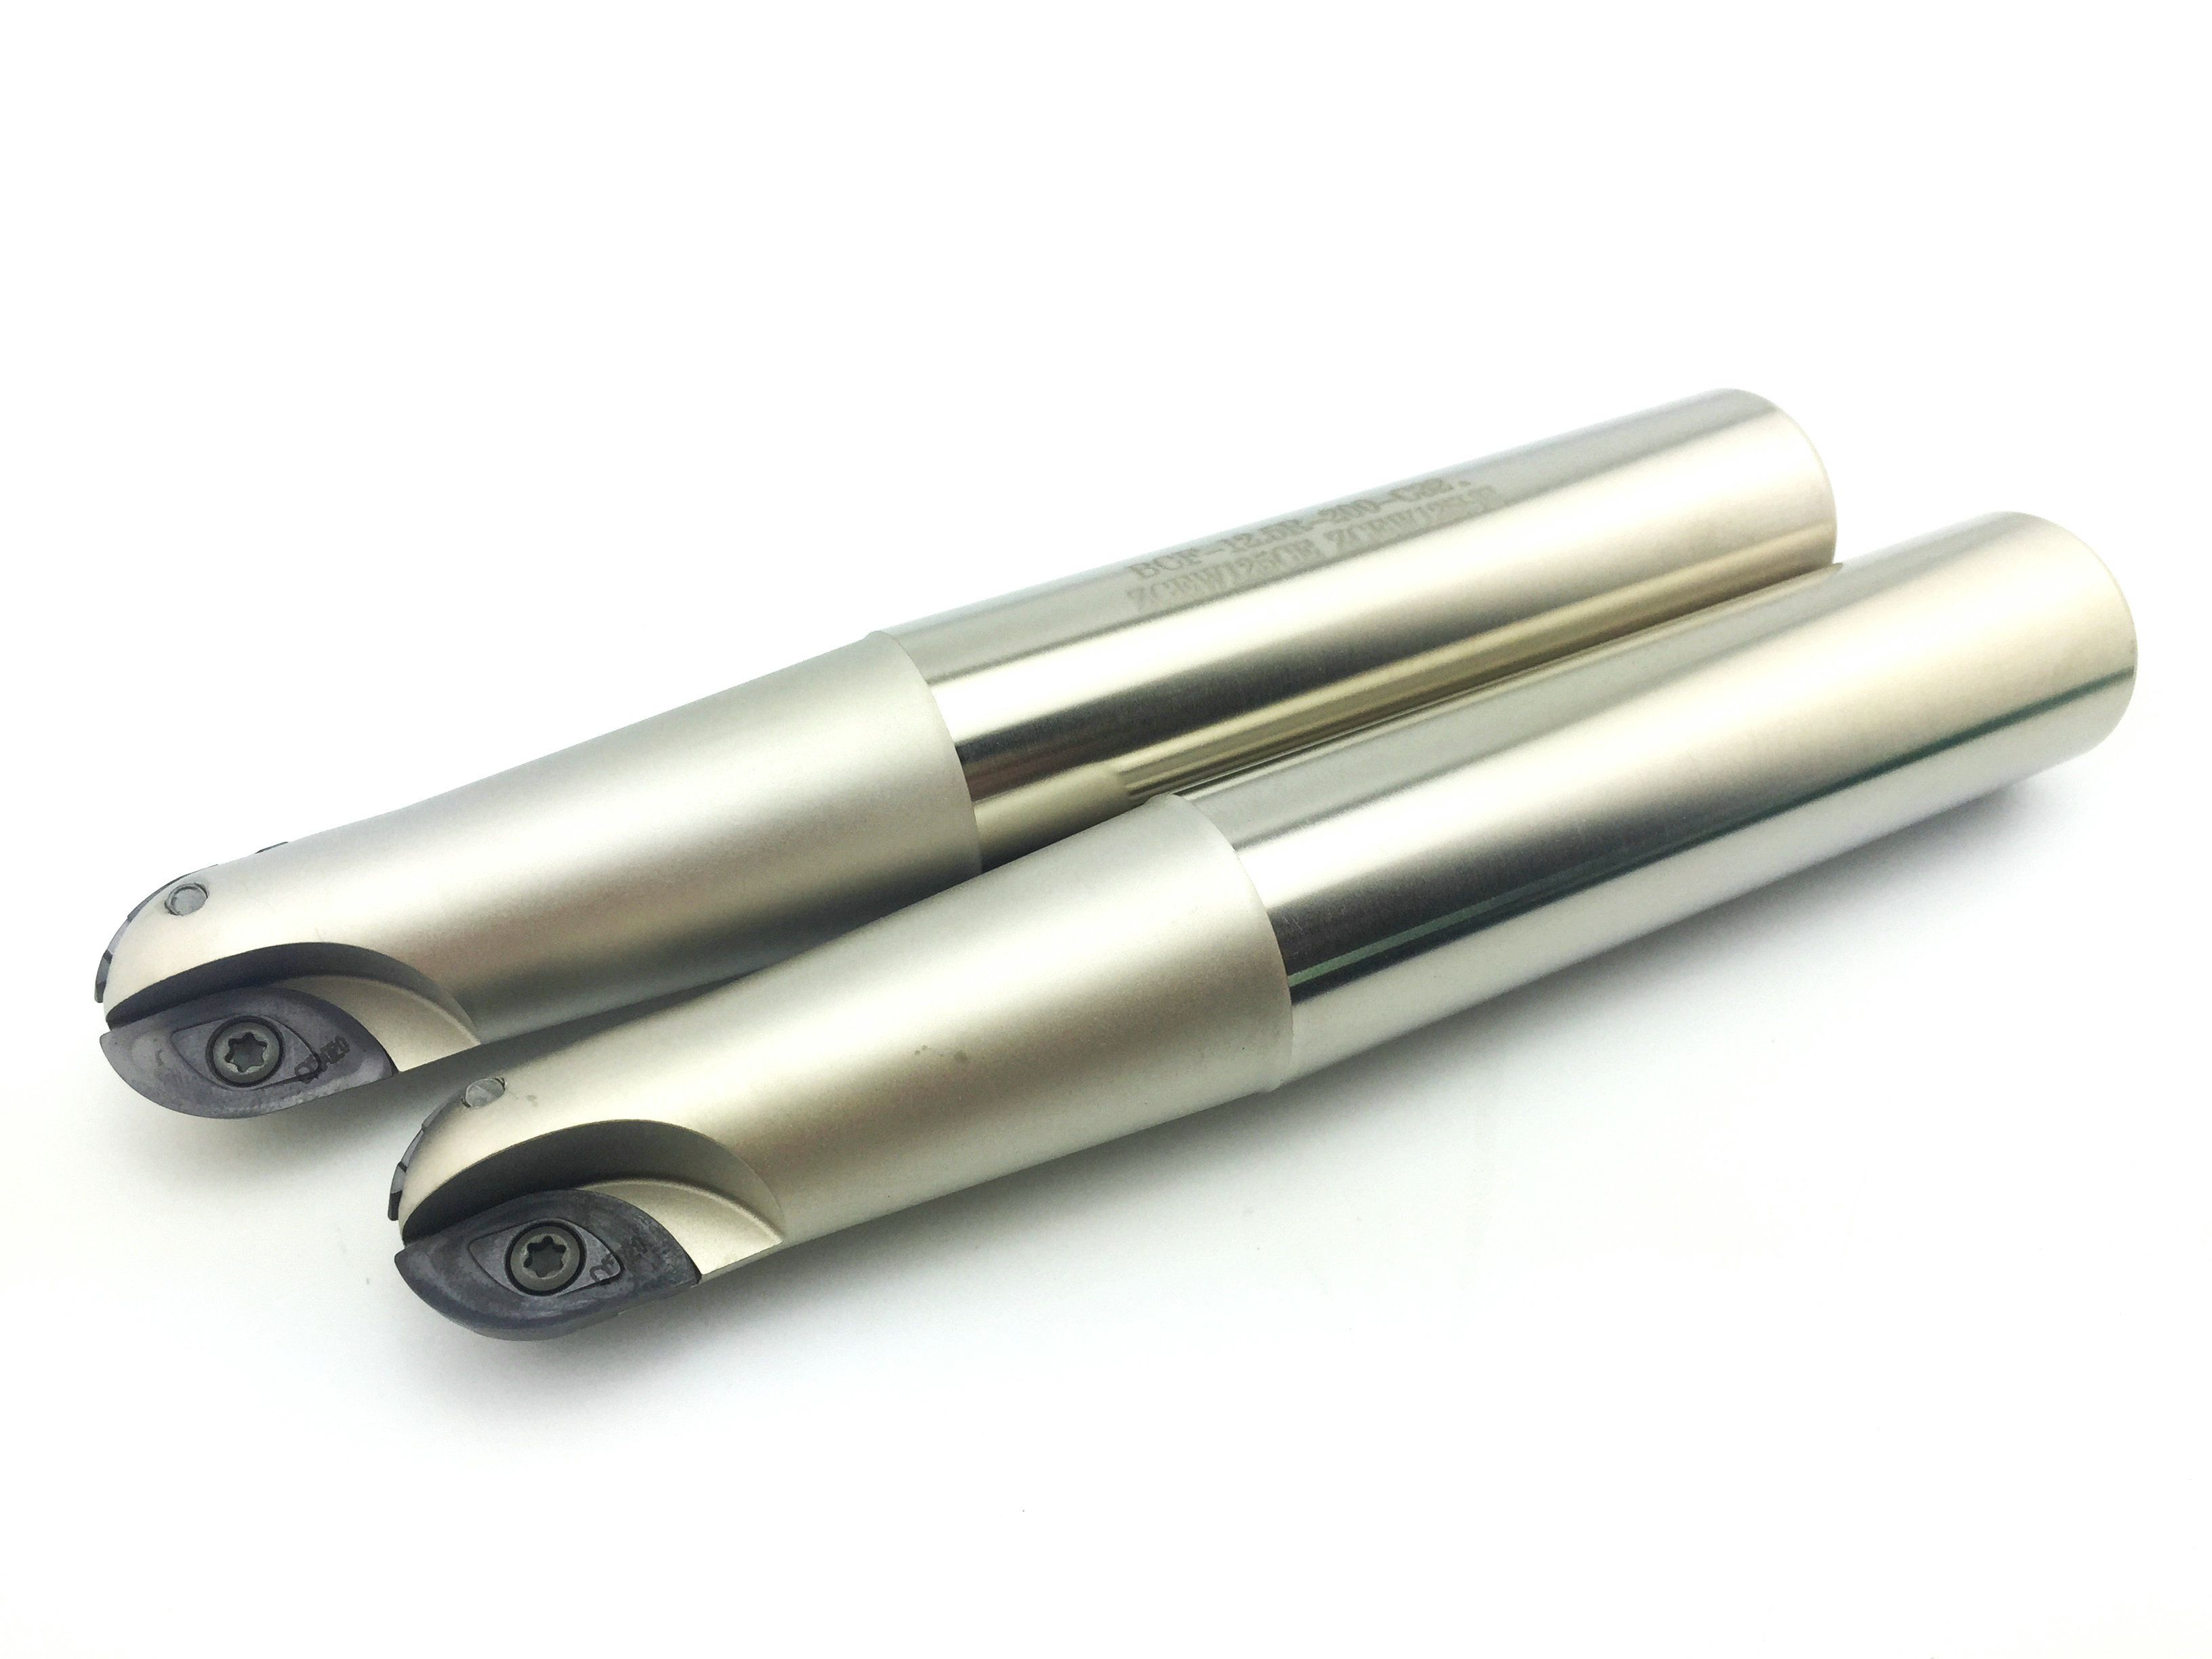 BCF BALL ROUGH END MILL INDEXABLE MILLING CUTTER CHANGEABLE INSERT CUTTER BCF C20-10R-200-1T ENDMILL HOLDER